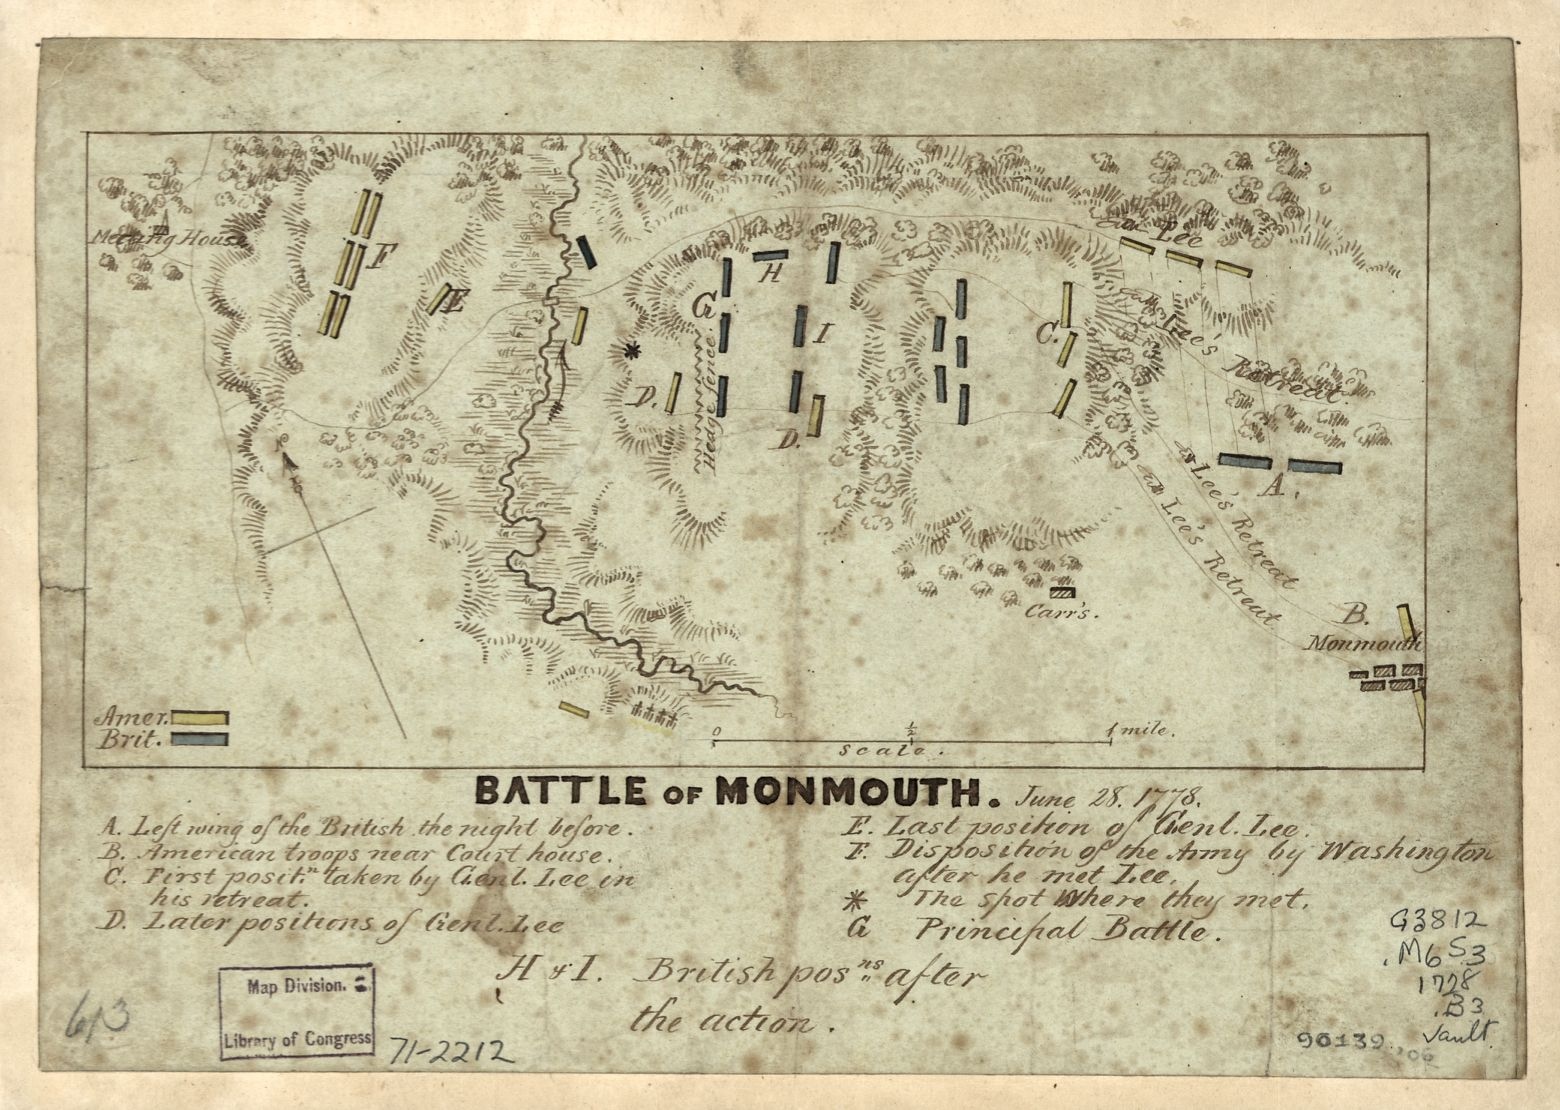 Map of the Battle of Monmouth, publication date unknown. Library of Congress call number G3812.M64S3 1778 .B3.